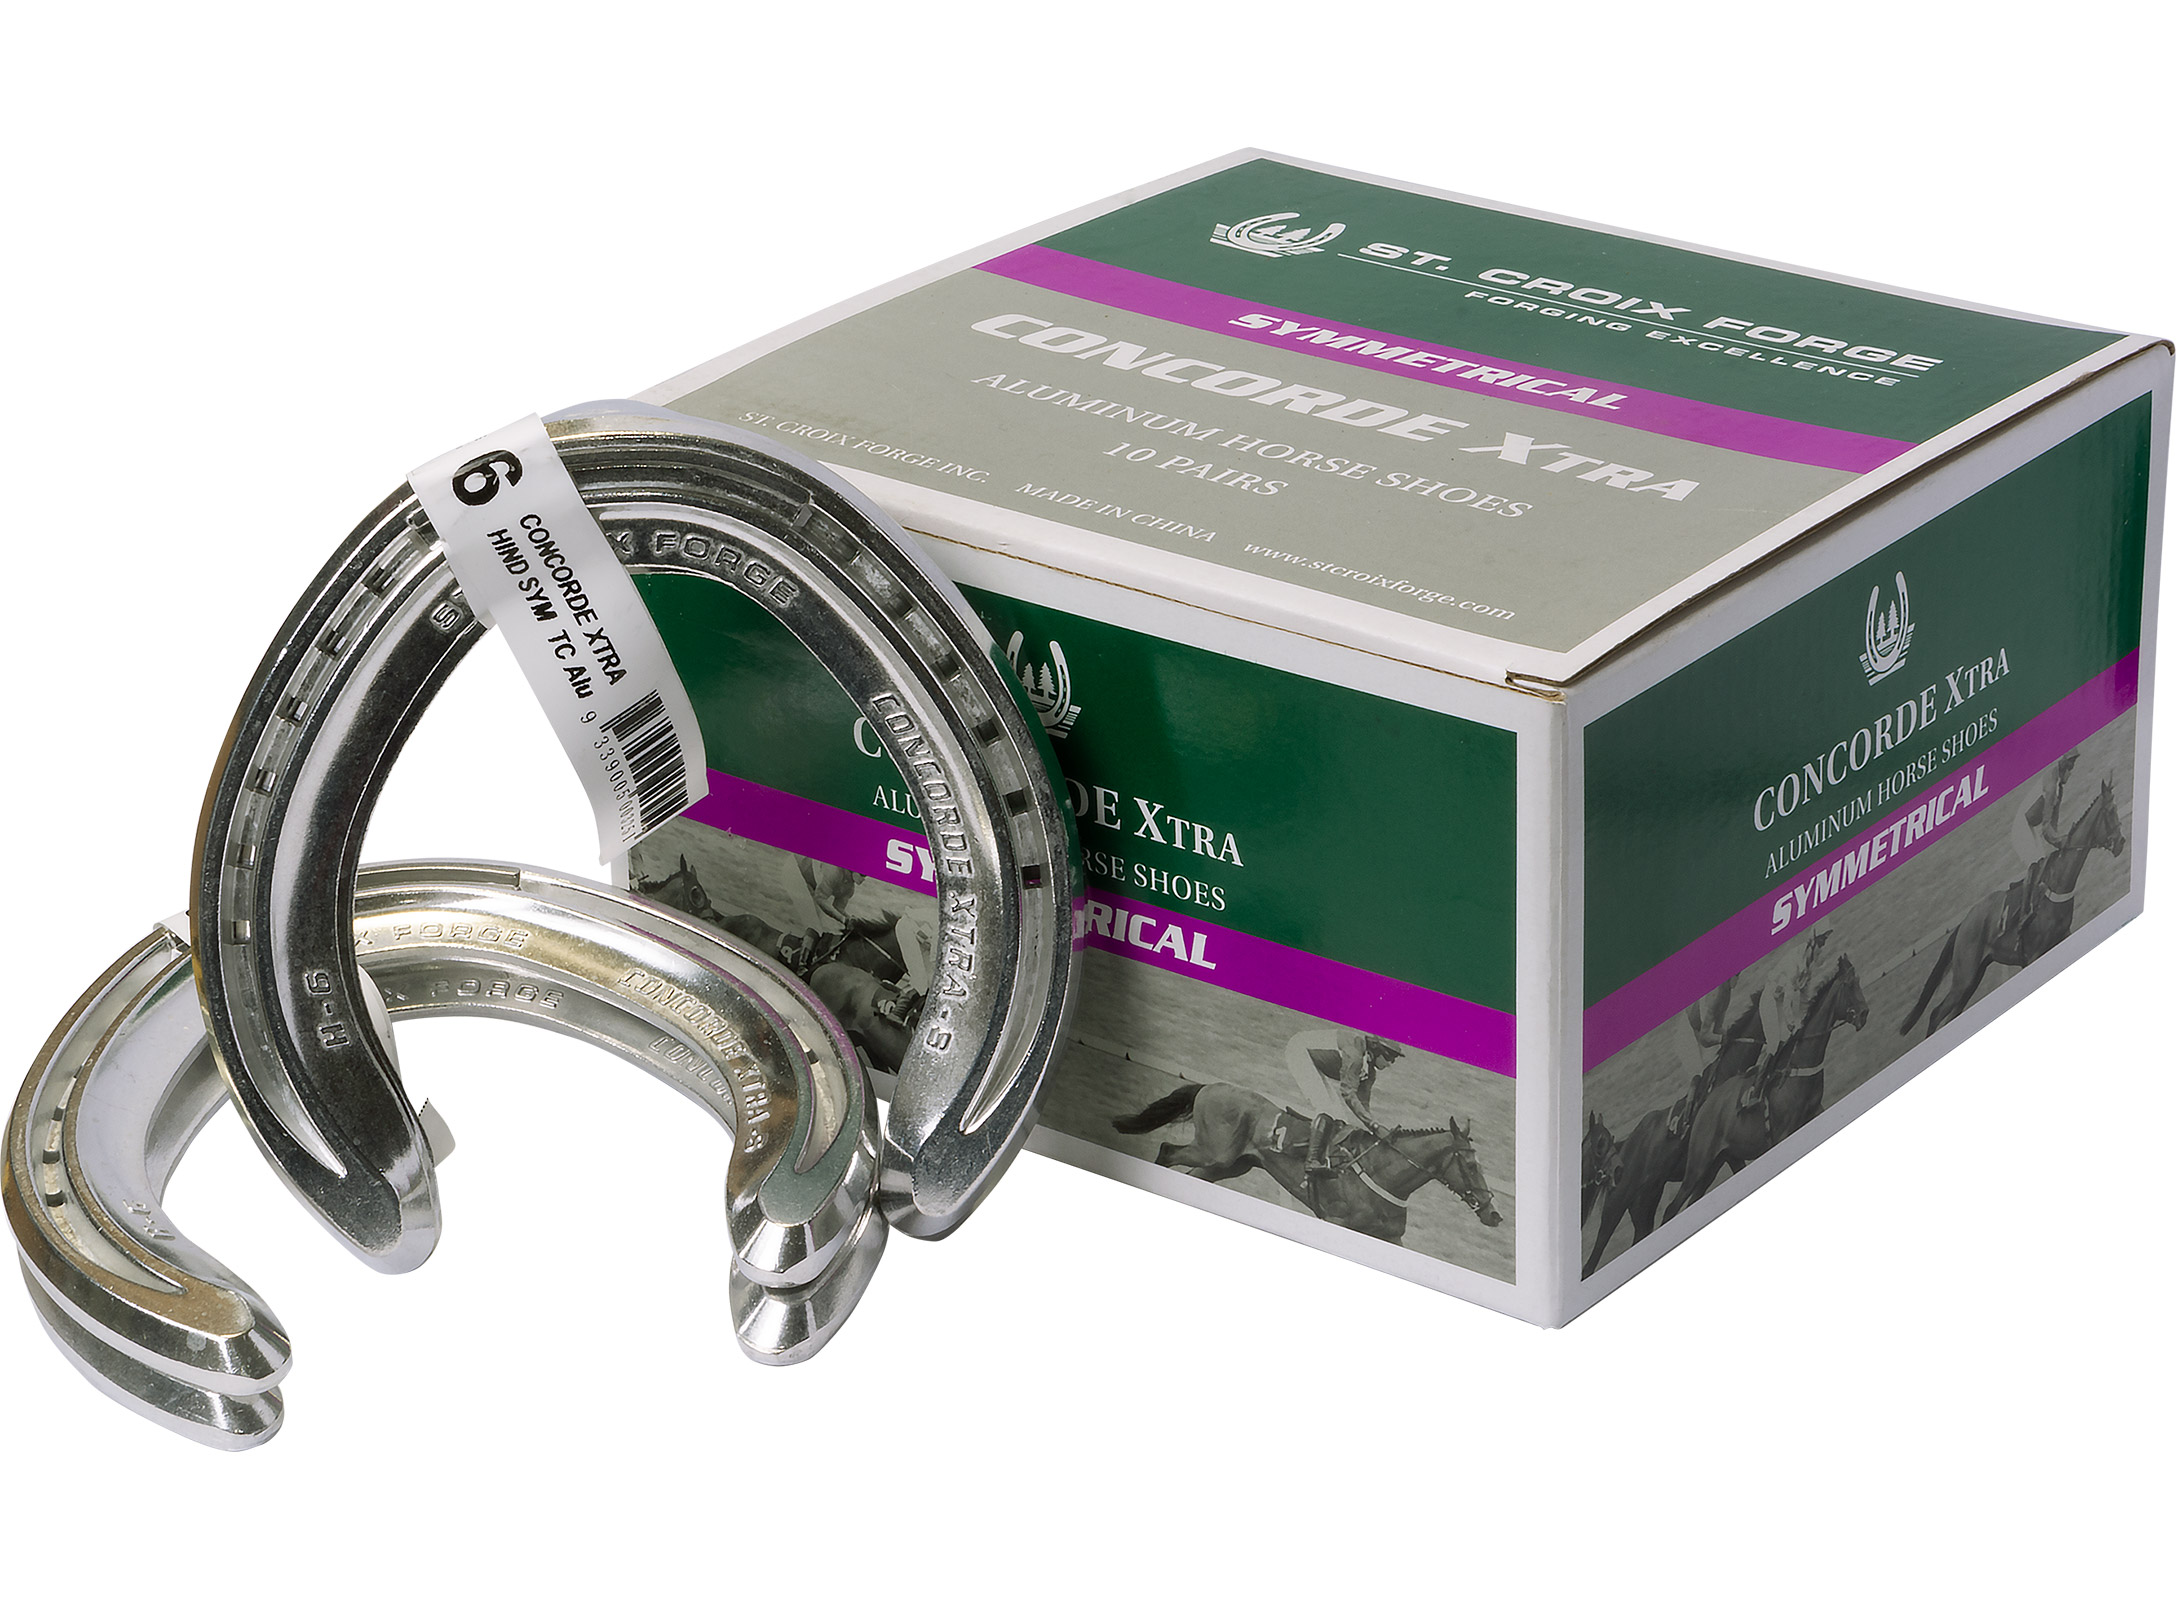 A box of St. Croix Concorde Xtra Aluminum Symmetrical horseshoes